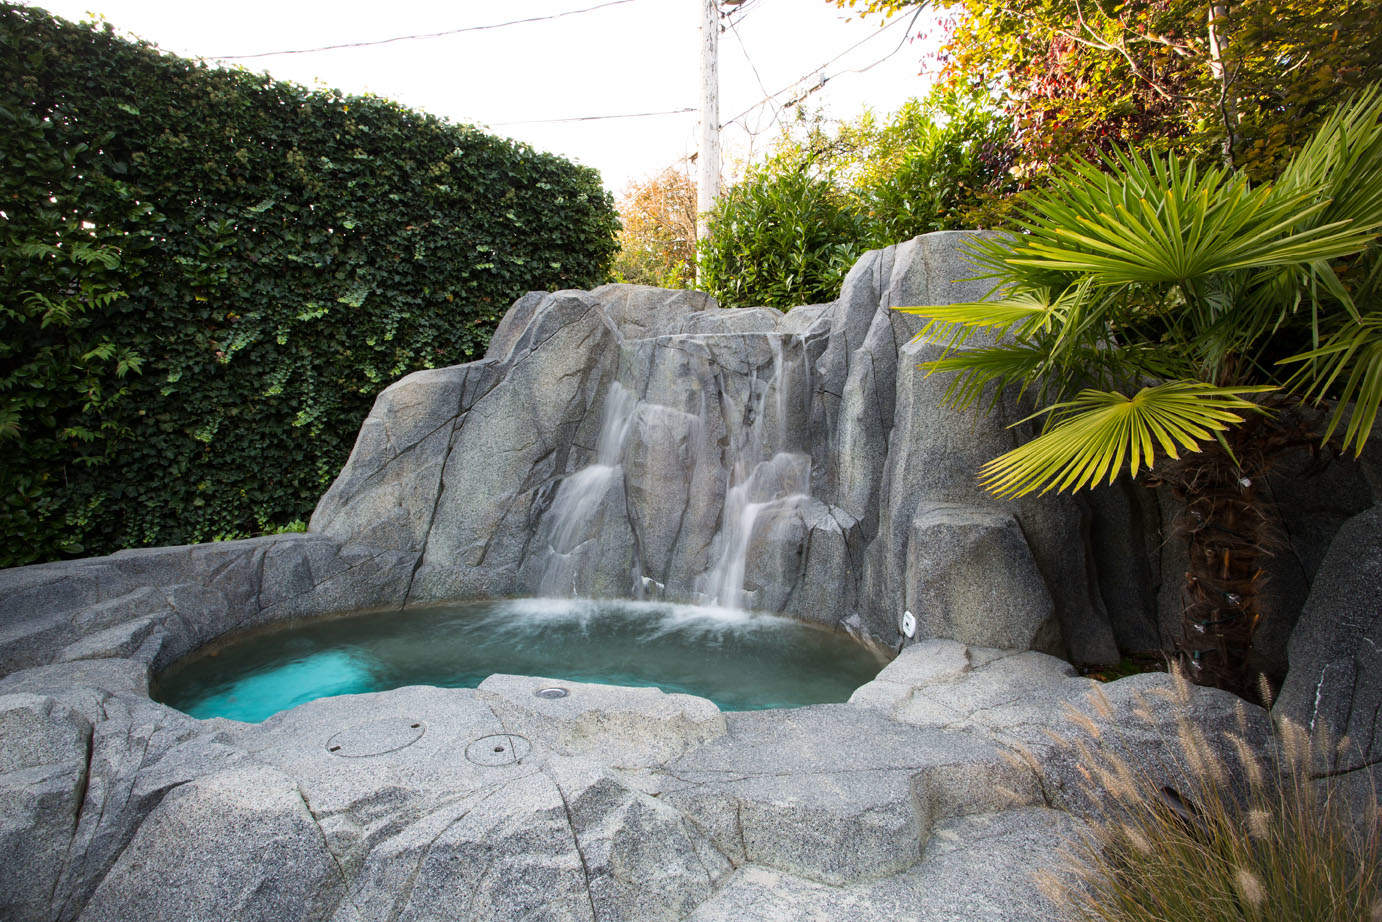 Elegant Custom Concrete Hot Tub With Waterfall Feature